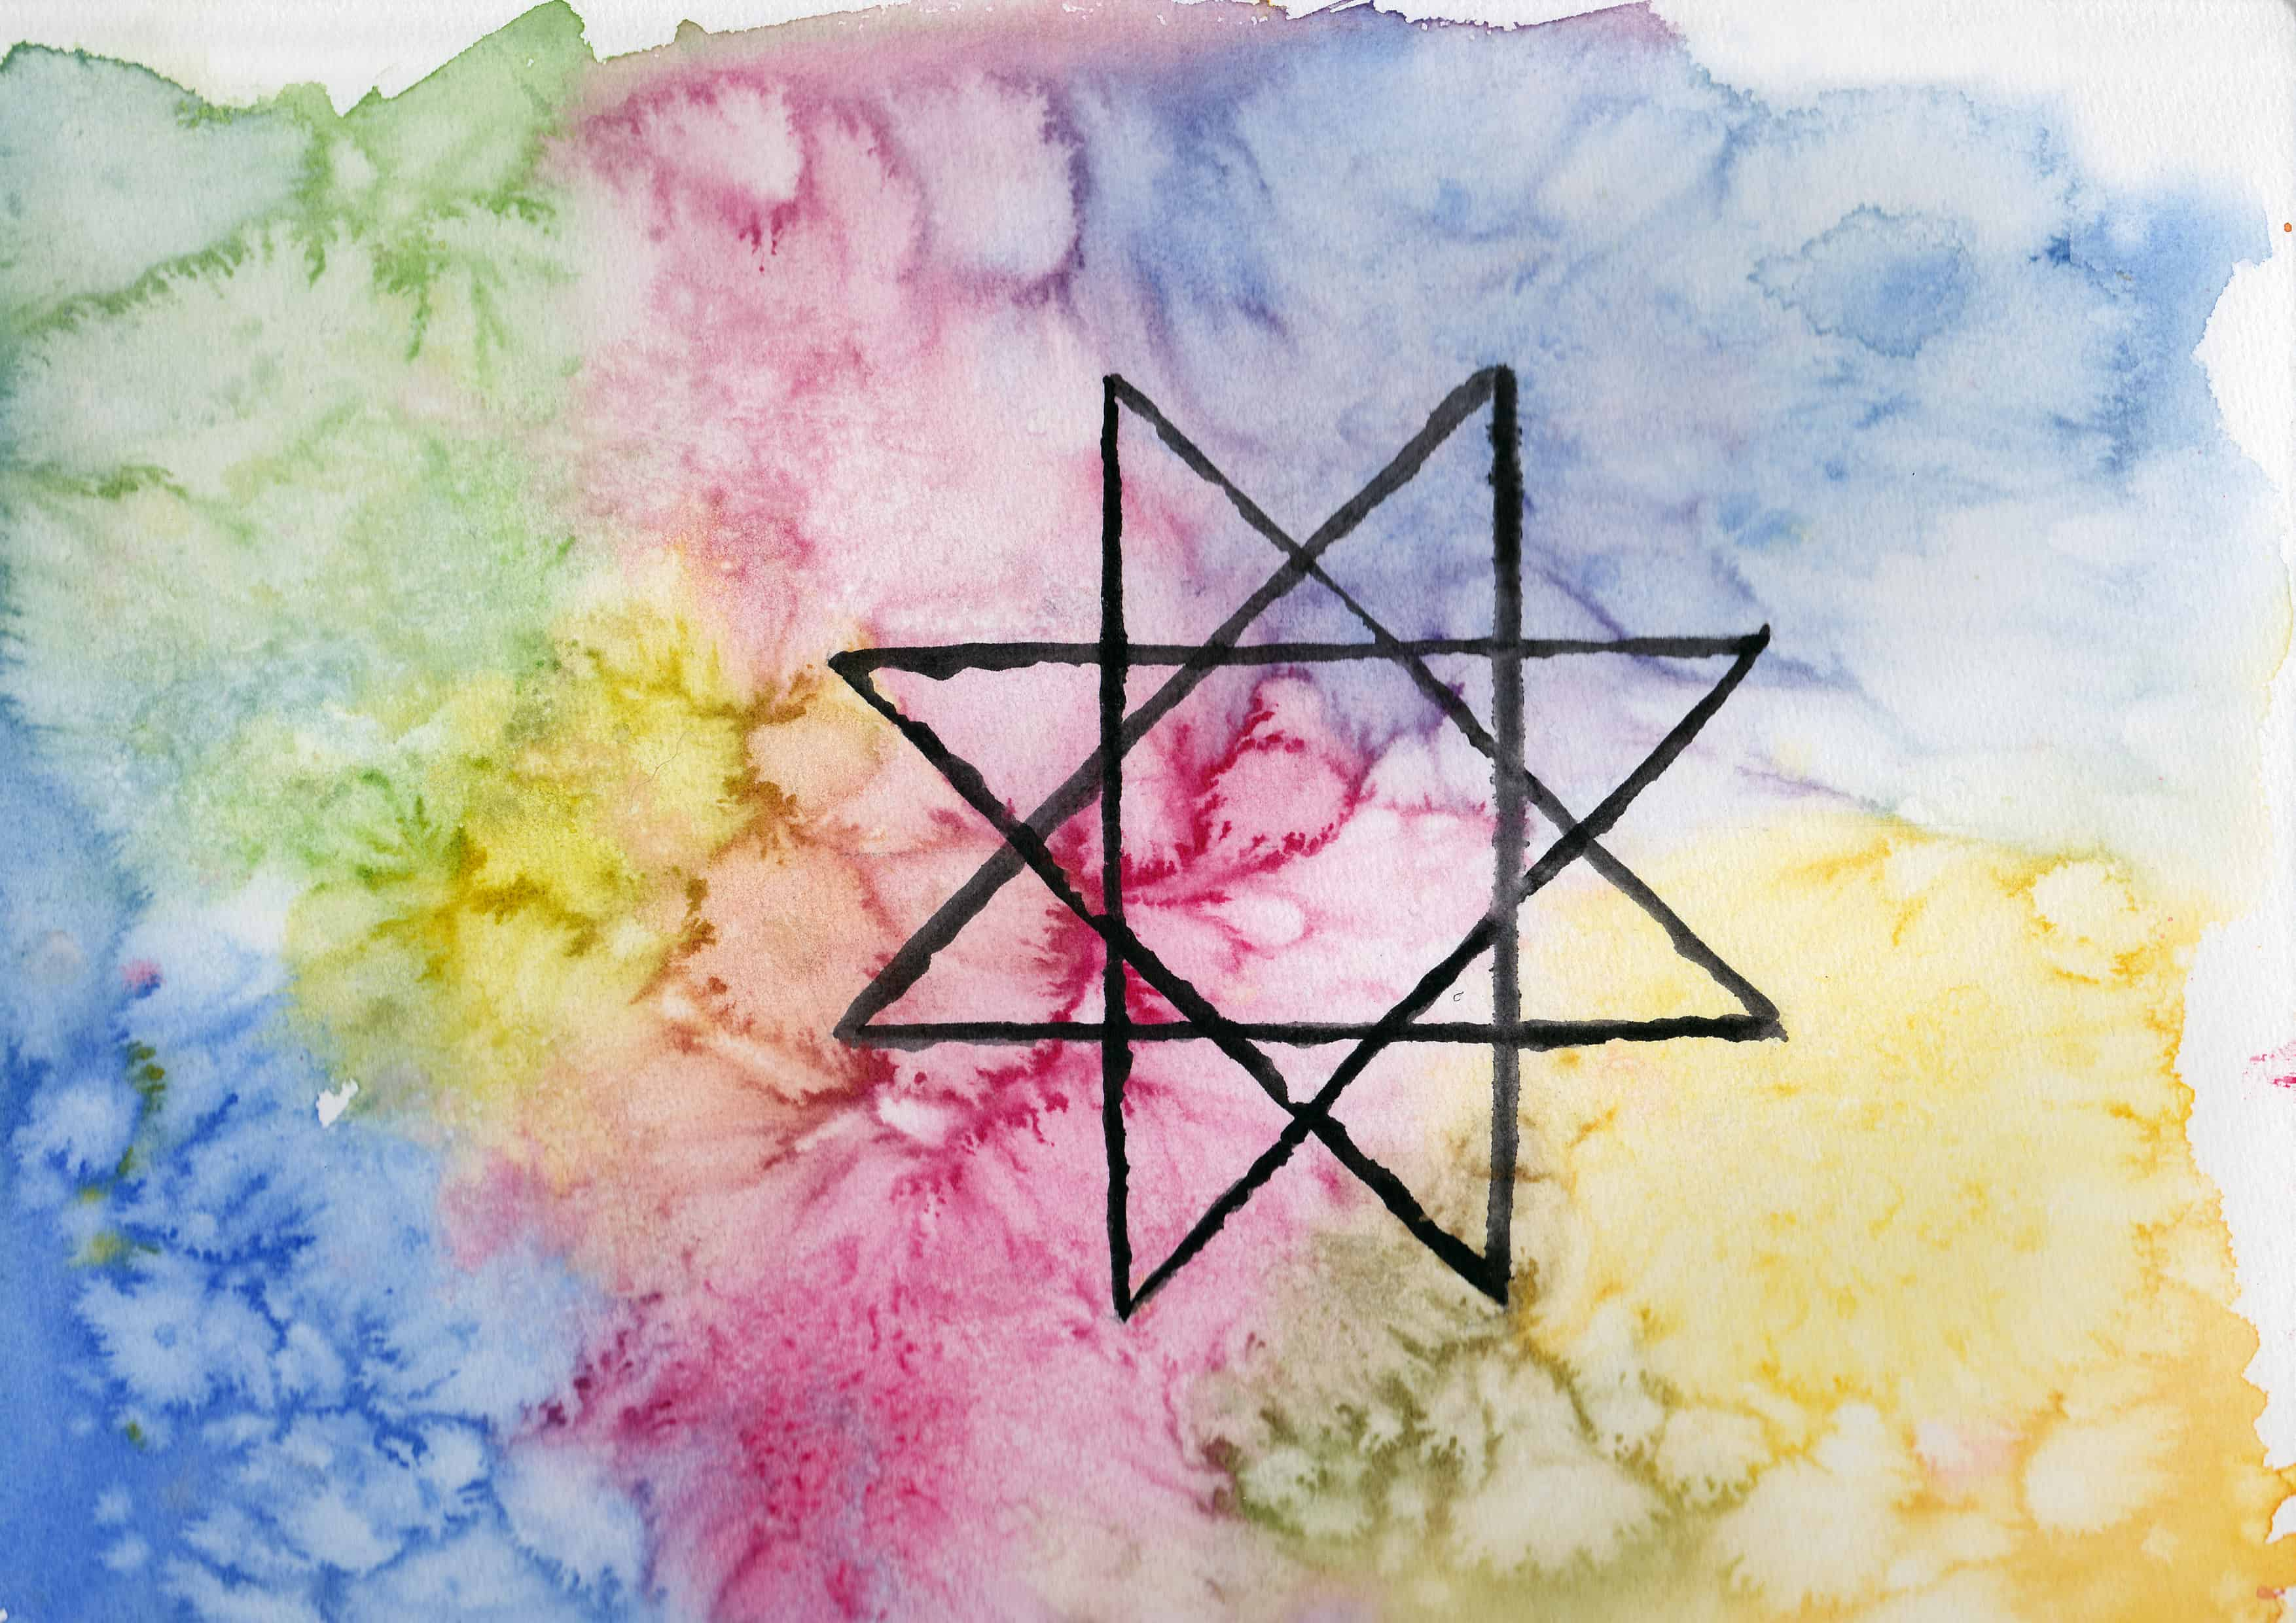 Ogdoad/Zodiac of Ra - 100 Sacred Symbols in Watercolour by Linda Ursin